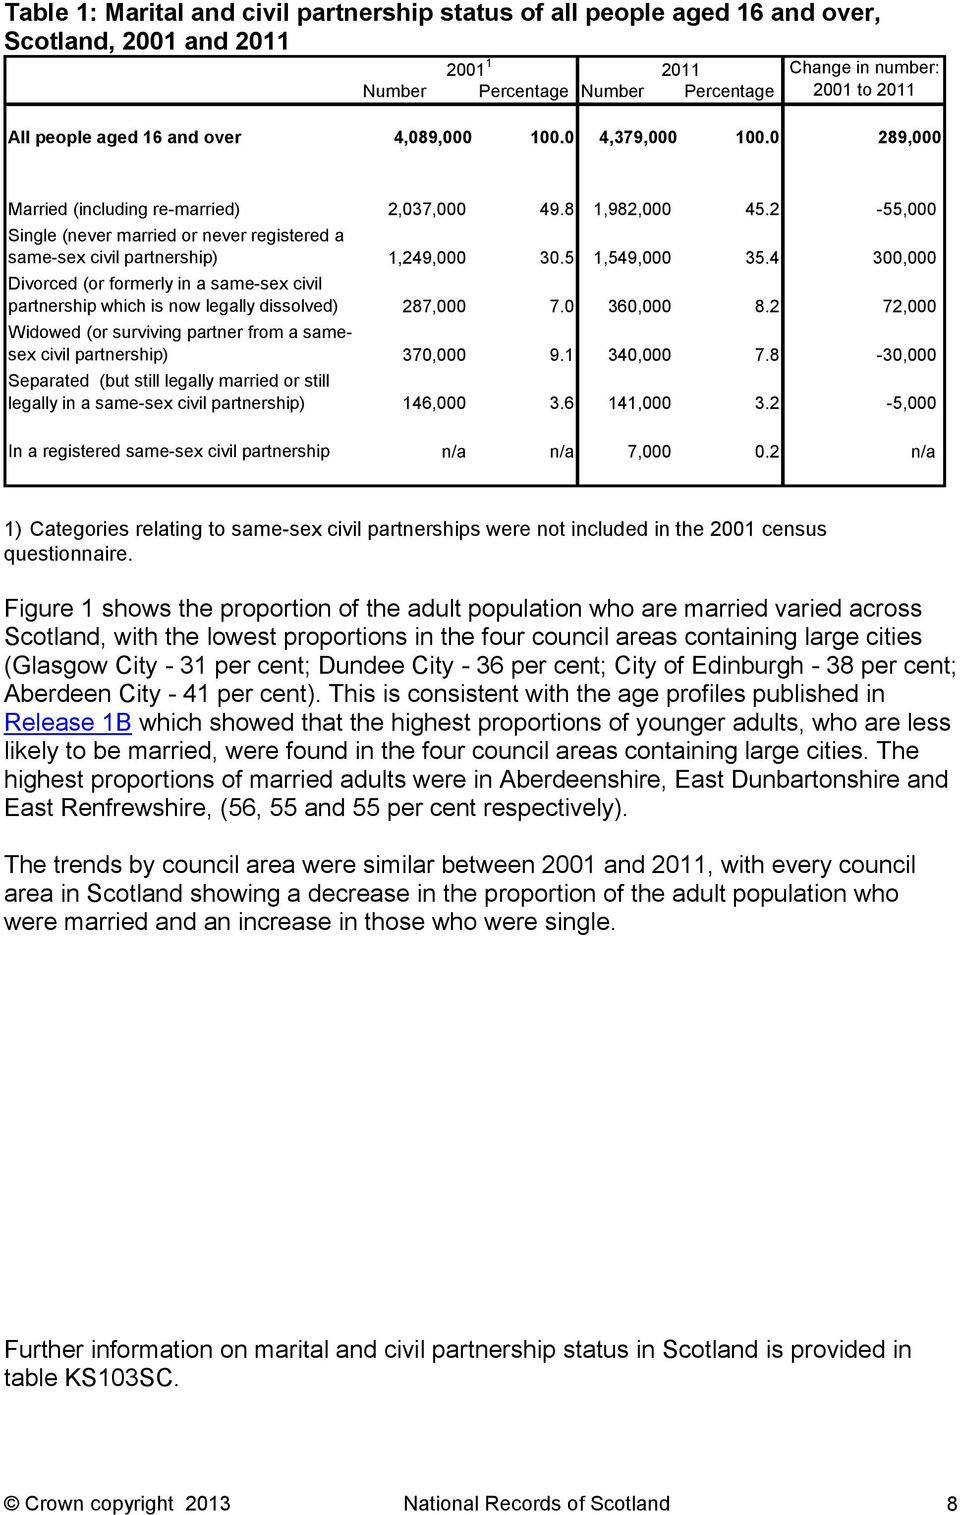 2-55,000 Single (never married or never registered a same-sex civil partnership) 1,249,000 30.5 1,549,000 35.